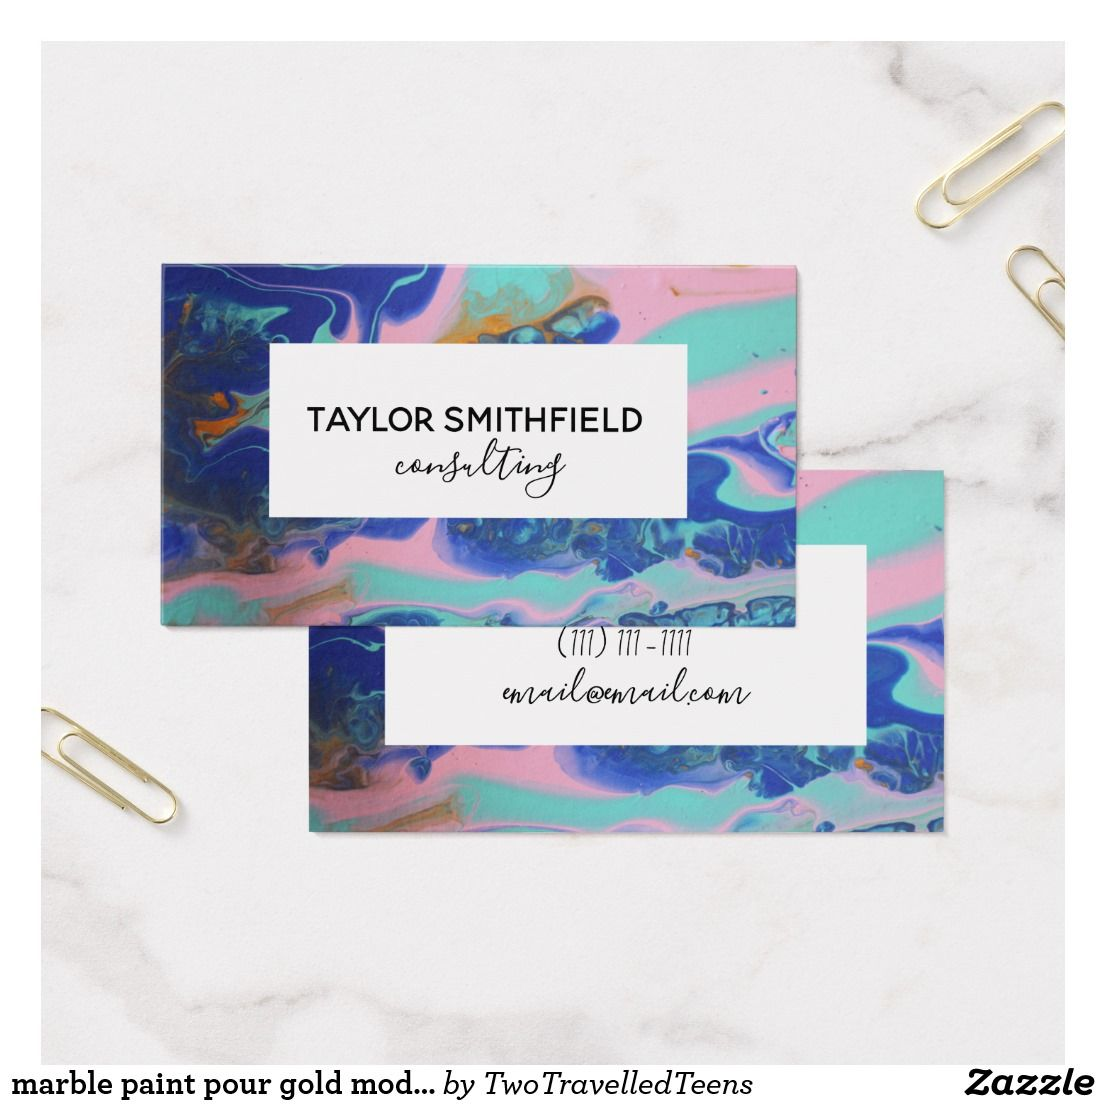 marble paint pour gold modern business card   Business Card ...